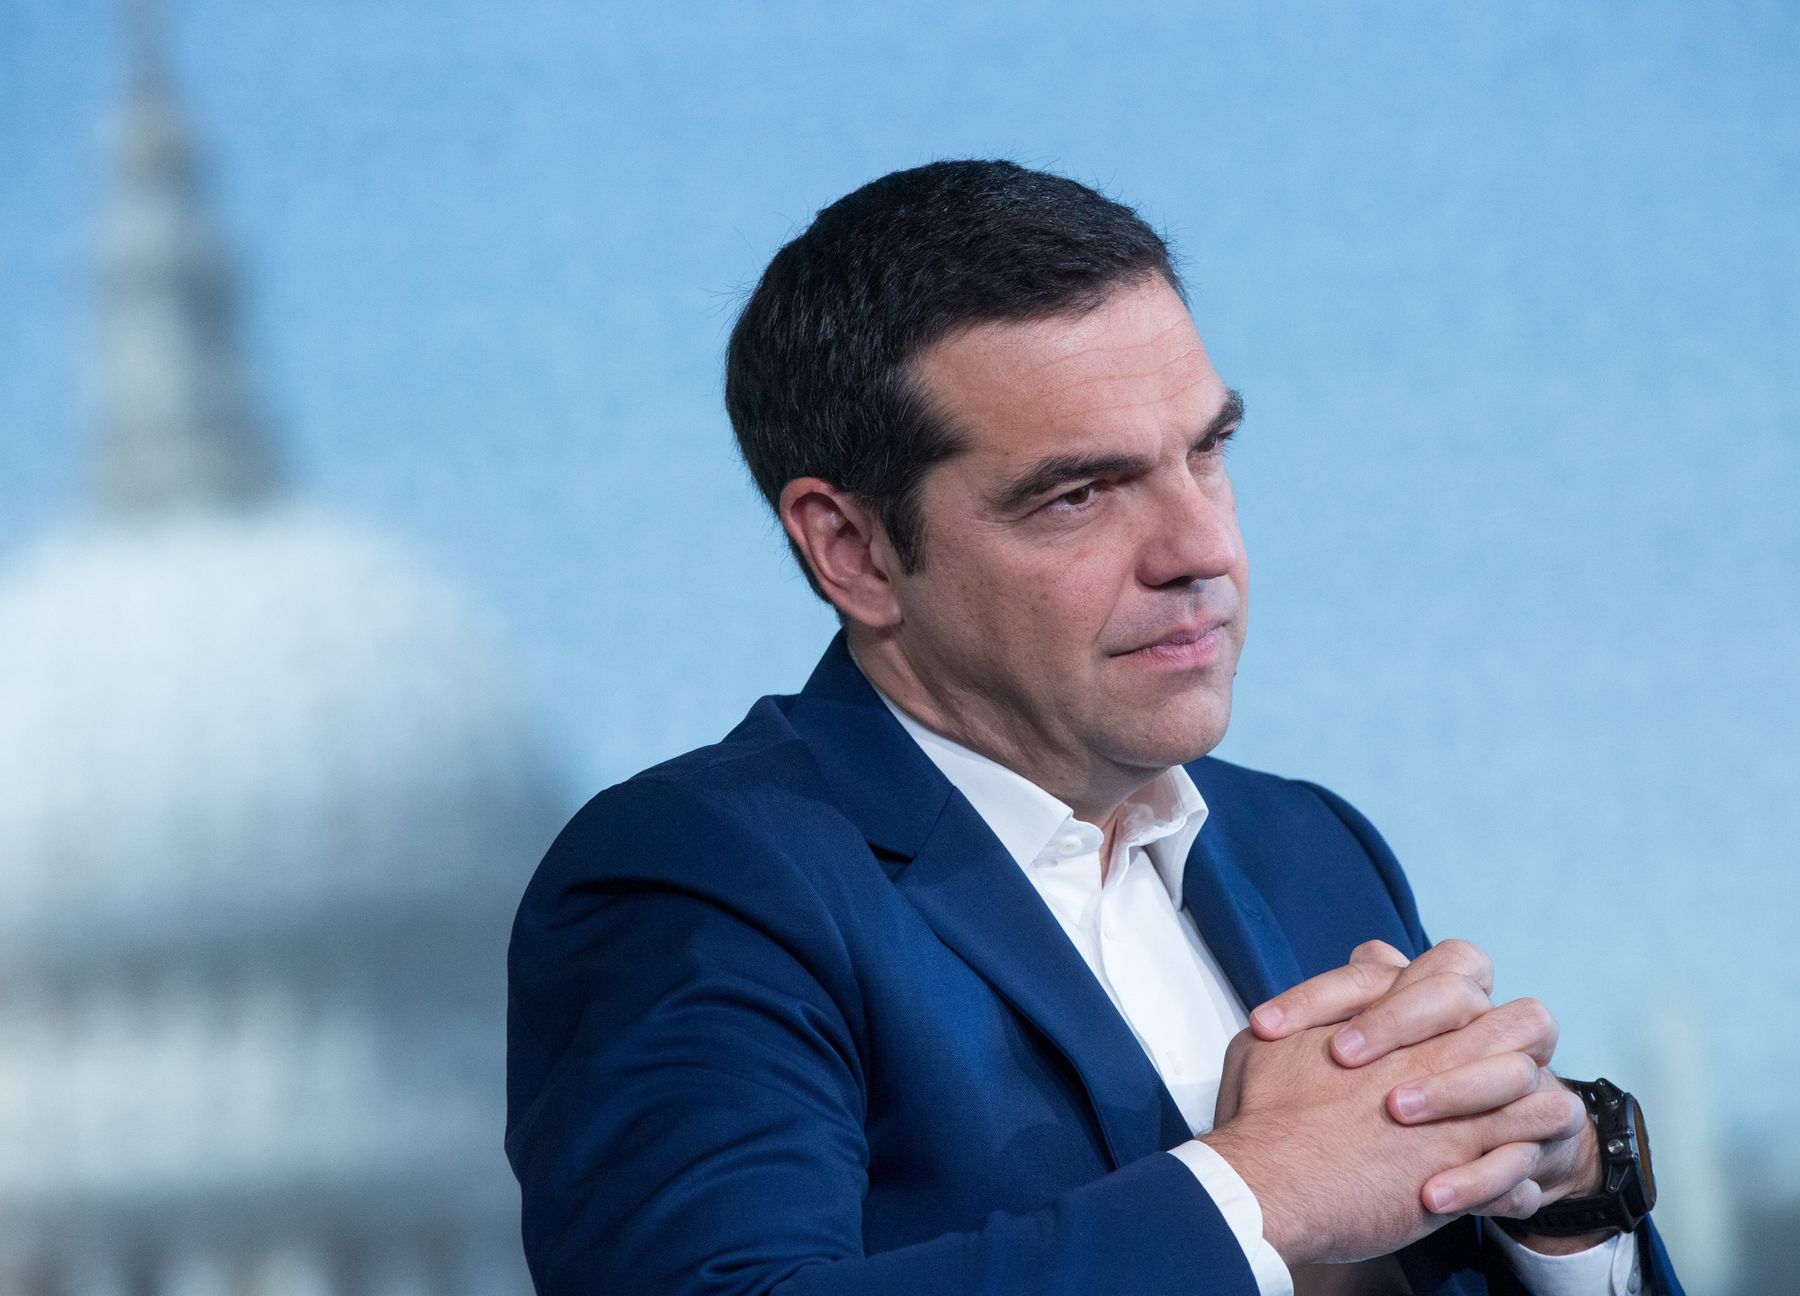 Greece Risks Sanctions From Creditors on Tsipras Surplus Cut